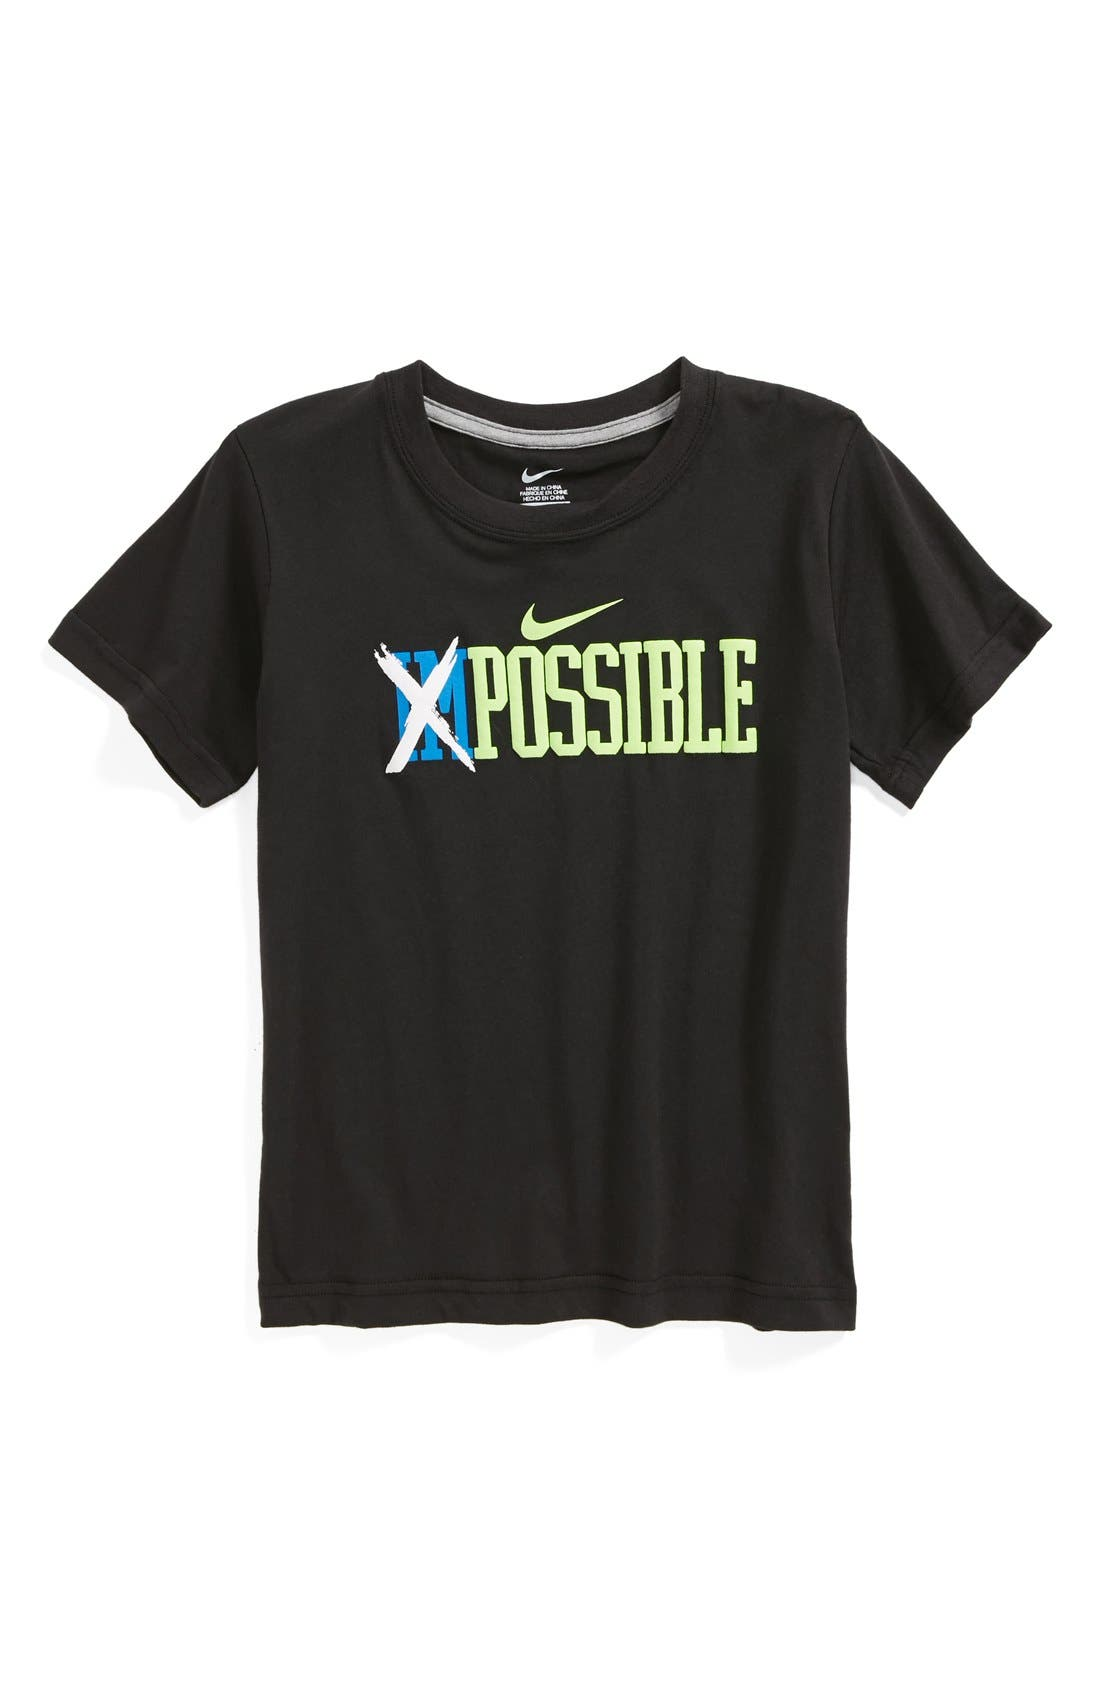 Alternate Image 1 Selected - Nike 'Possible' T-Shirt (Little Boys)